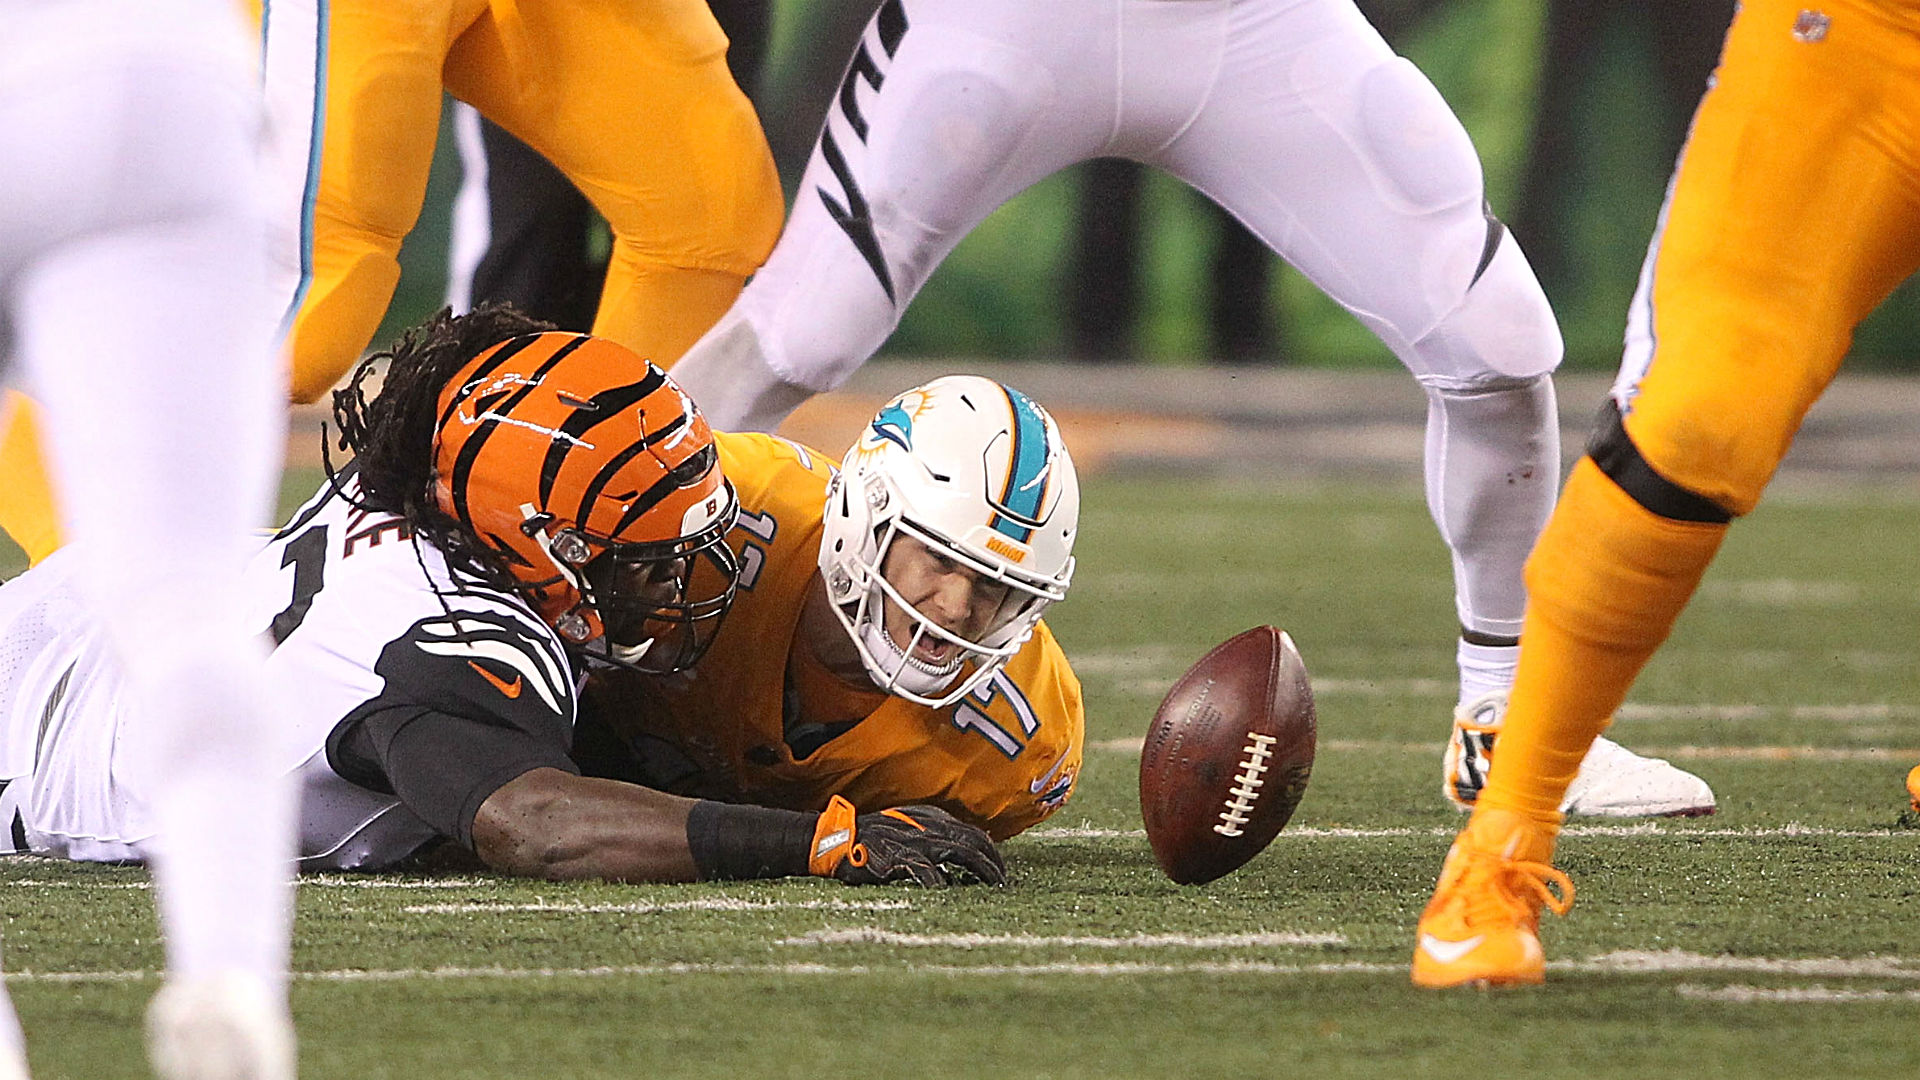 Ryan Tannehill underwhelms in Dolphins' Thursday loss